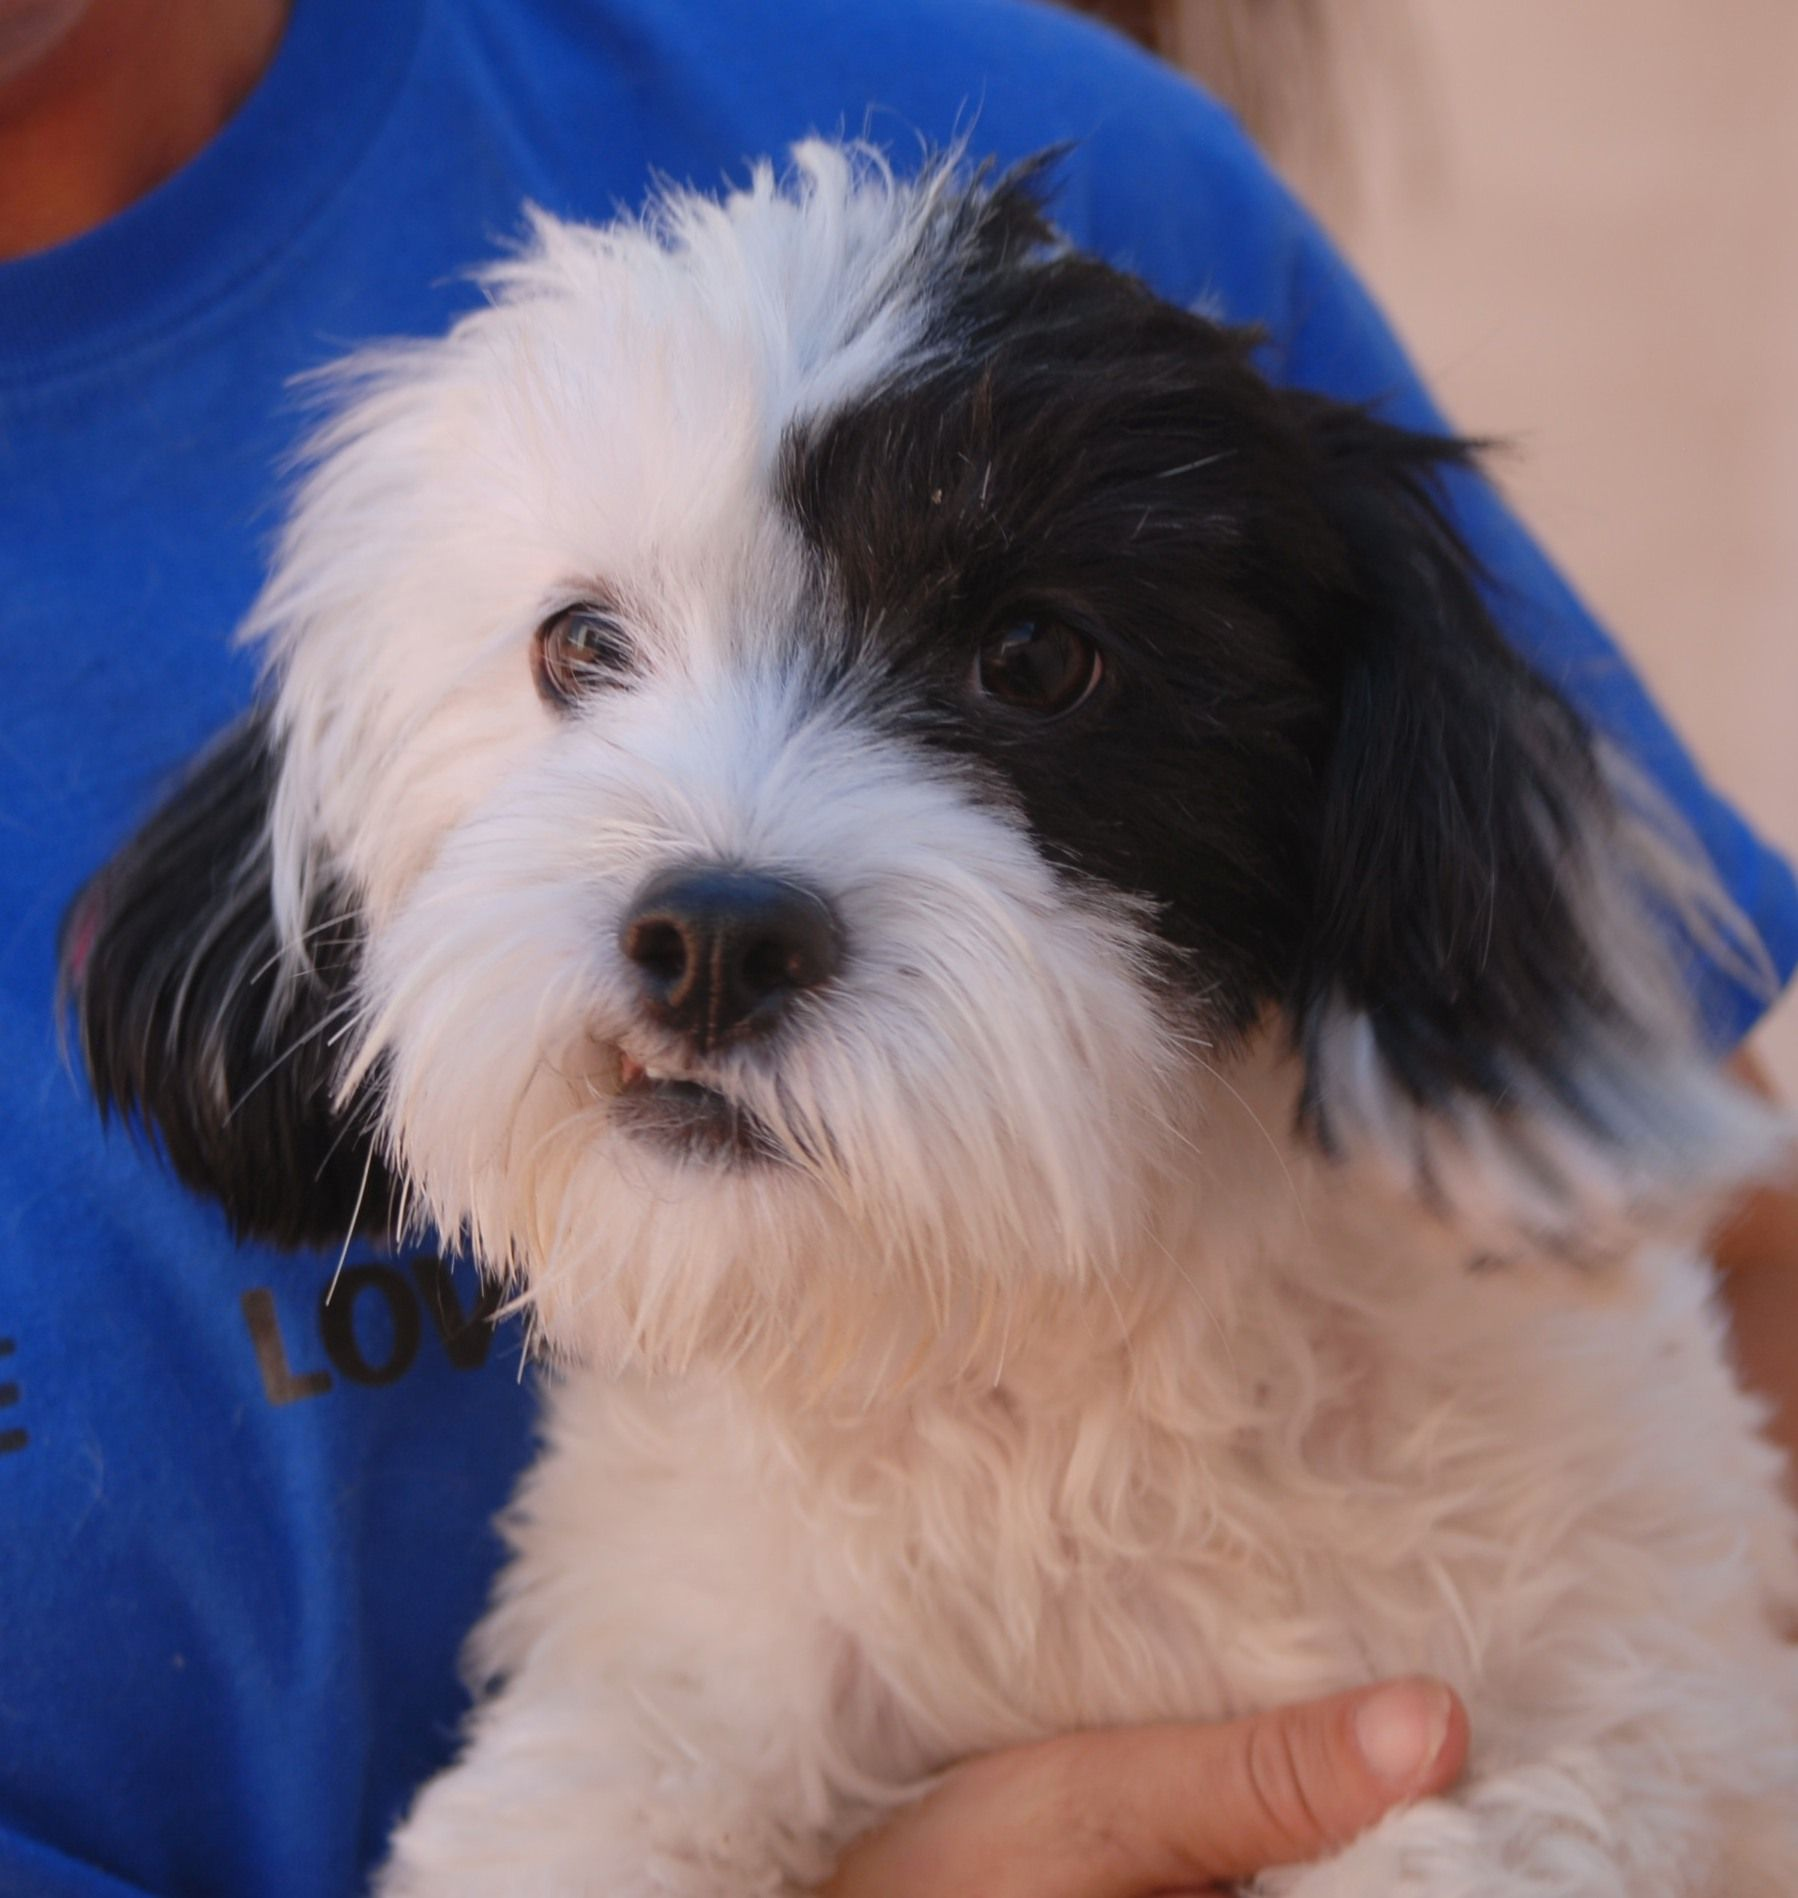 Pin On Nevada Spca Rescued Animals